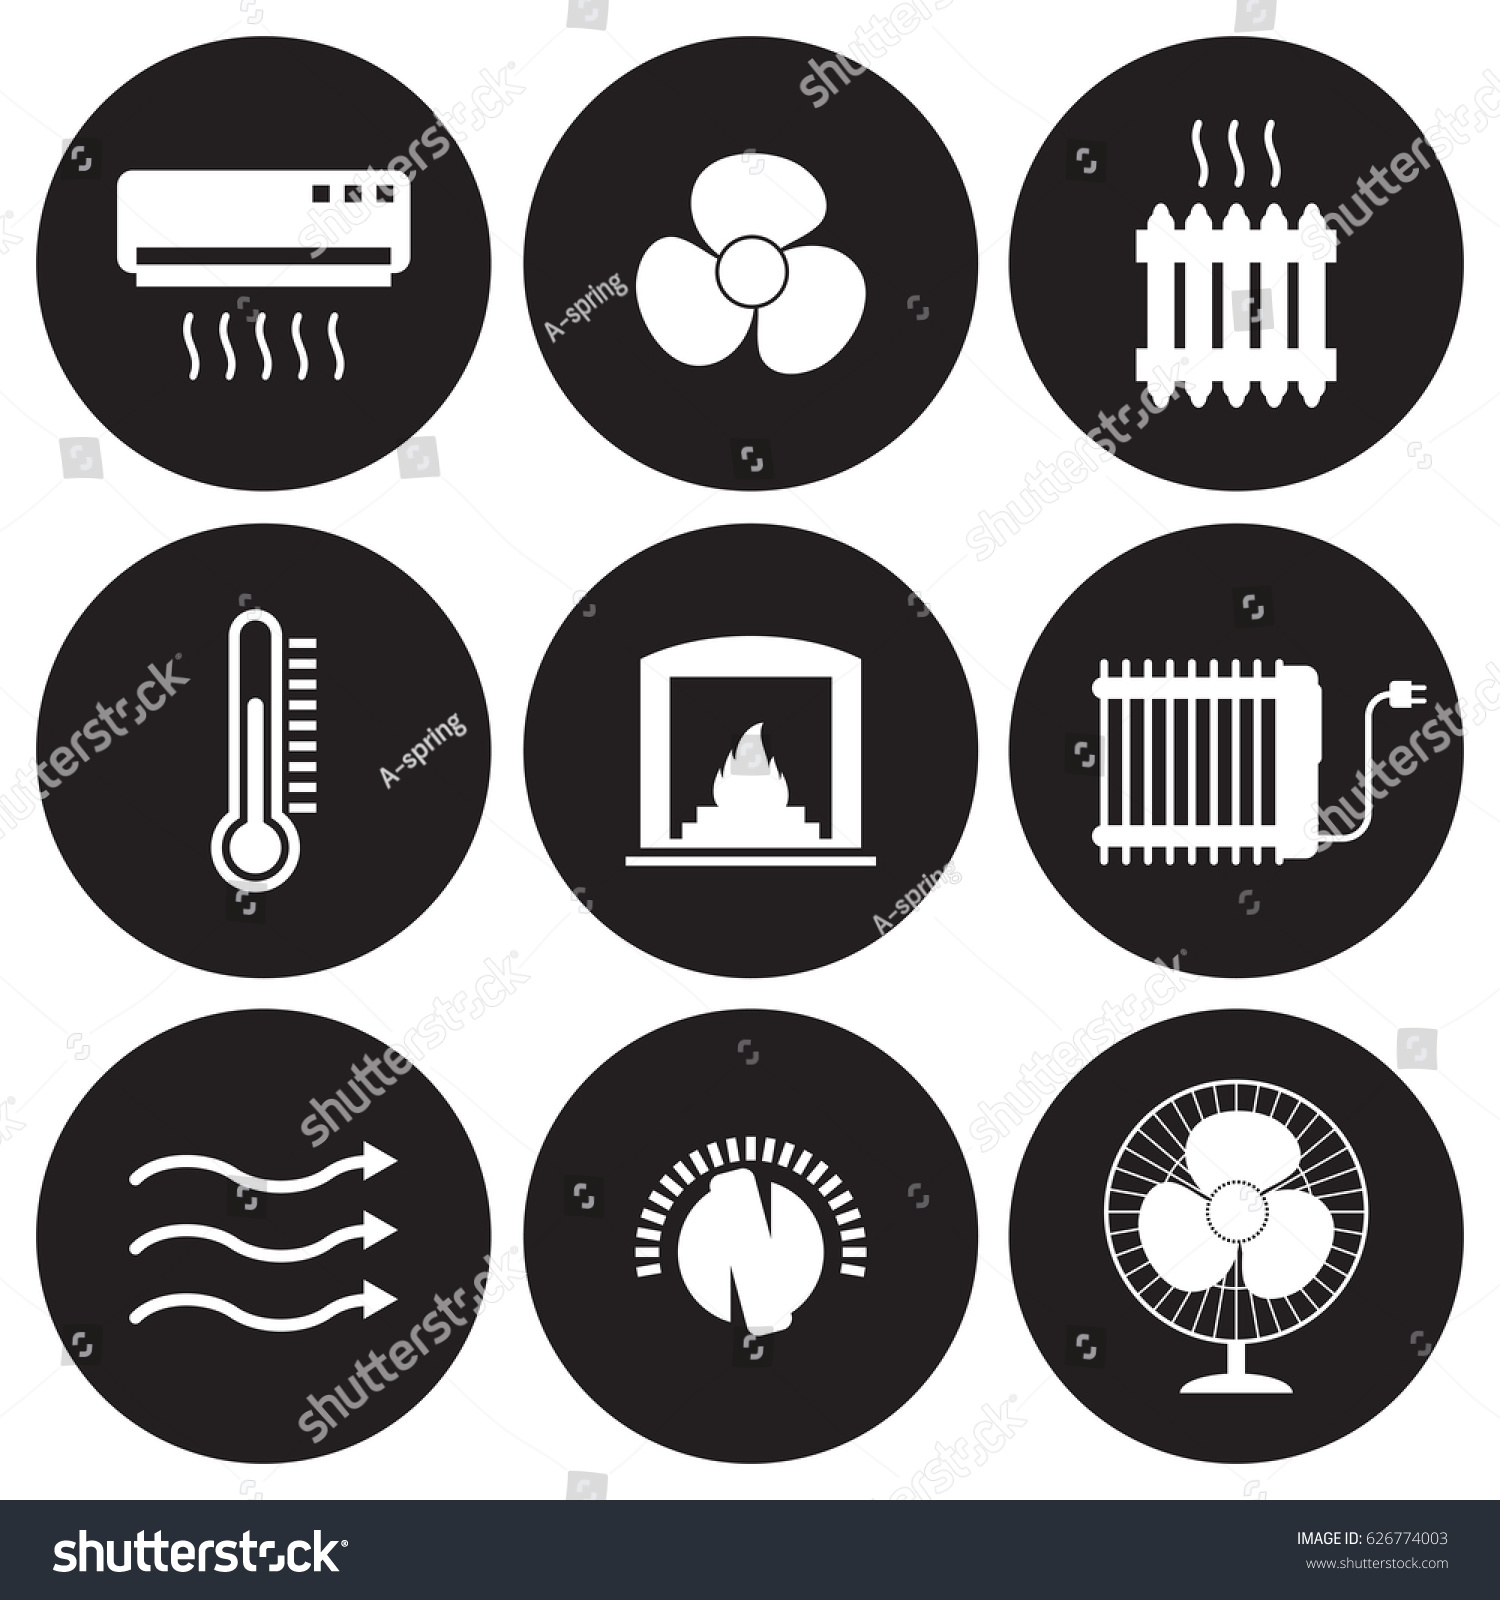 heating cooling icon. heating and cooling icons set. white on a black background icon